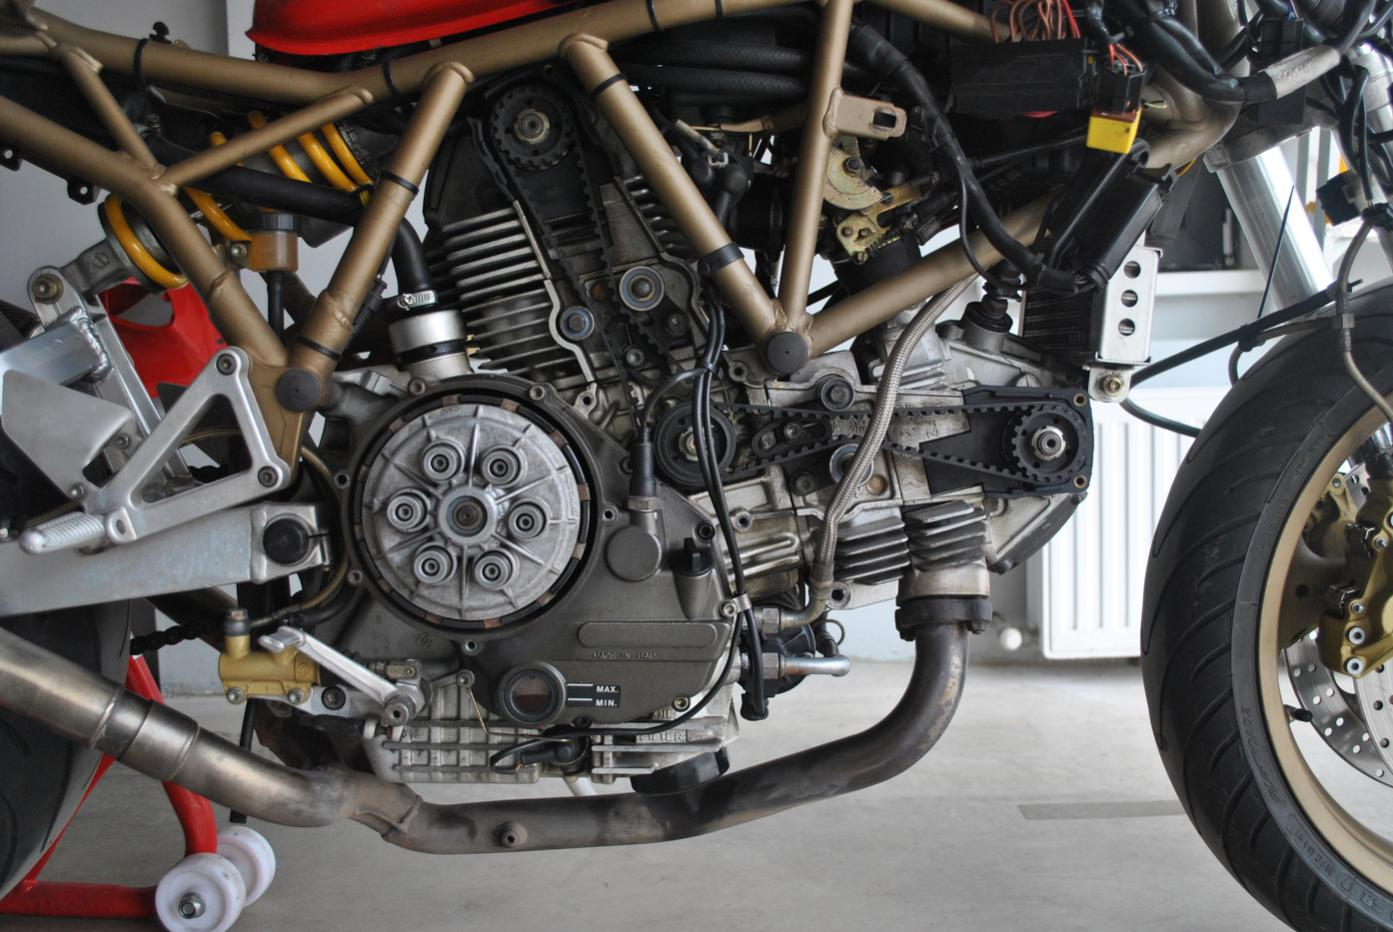 Ducati 900ss Ground Wiring What Is This Ducati Ms